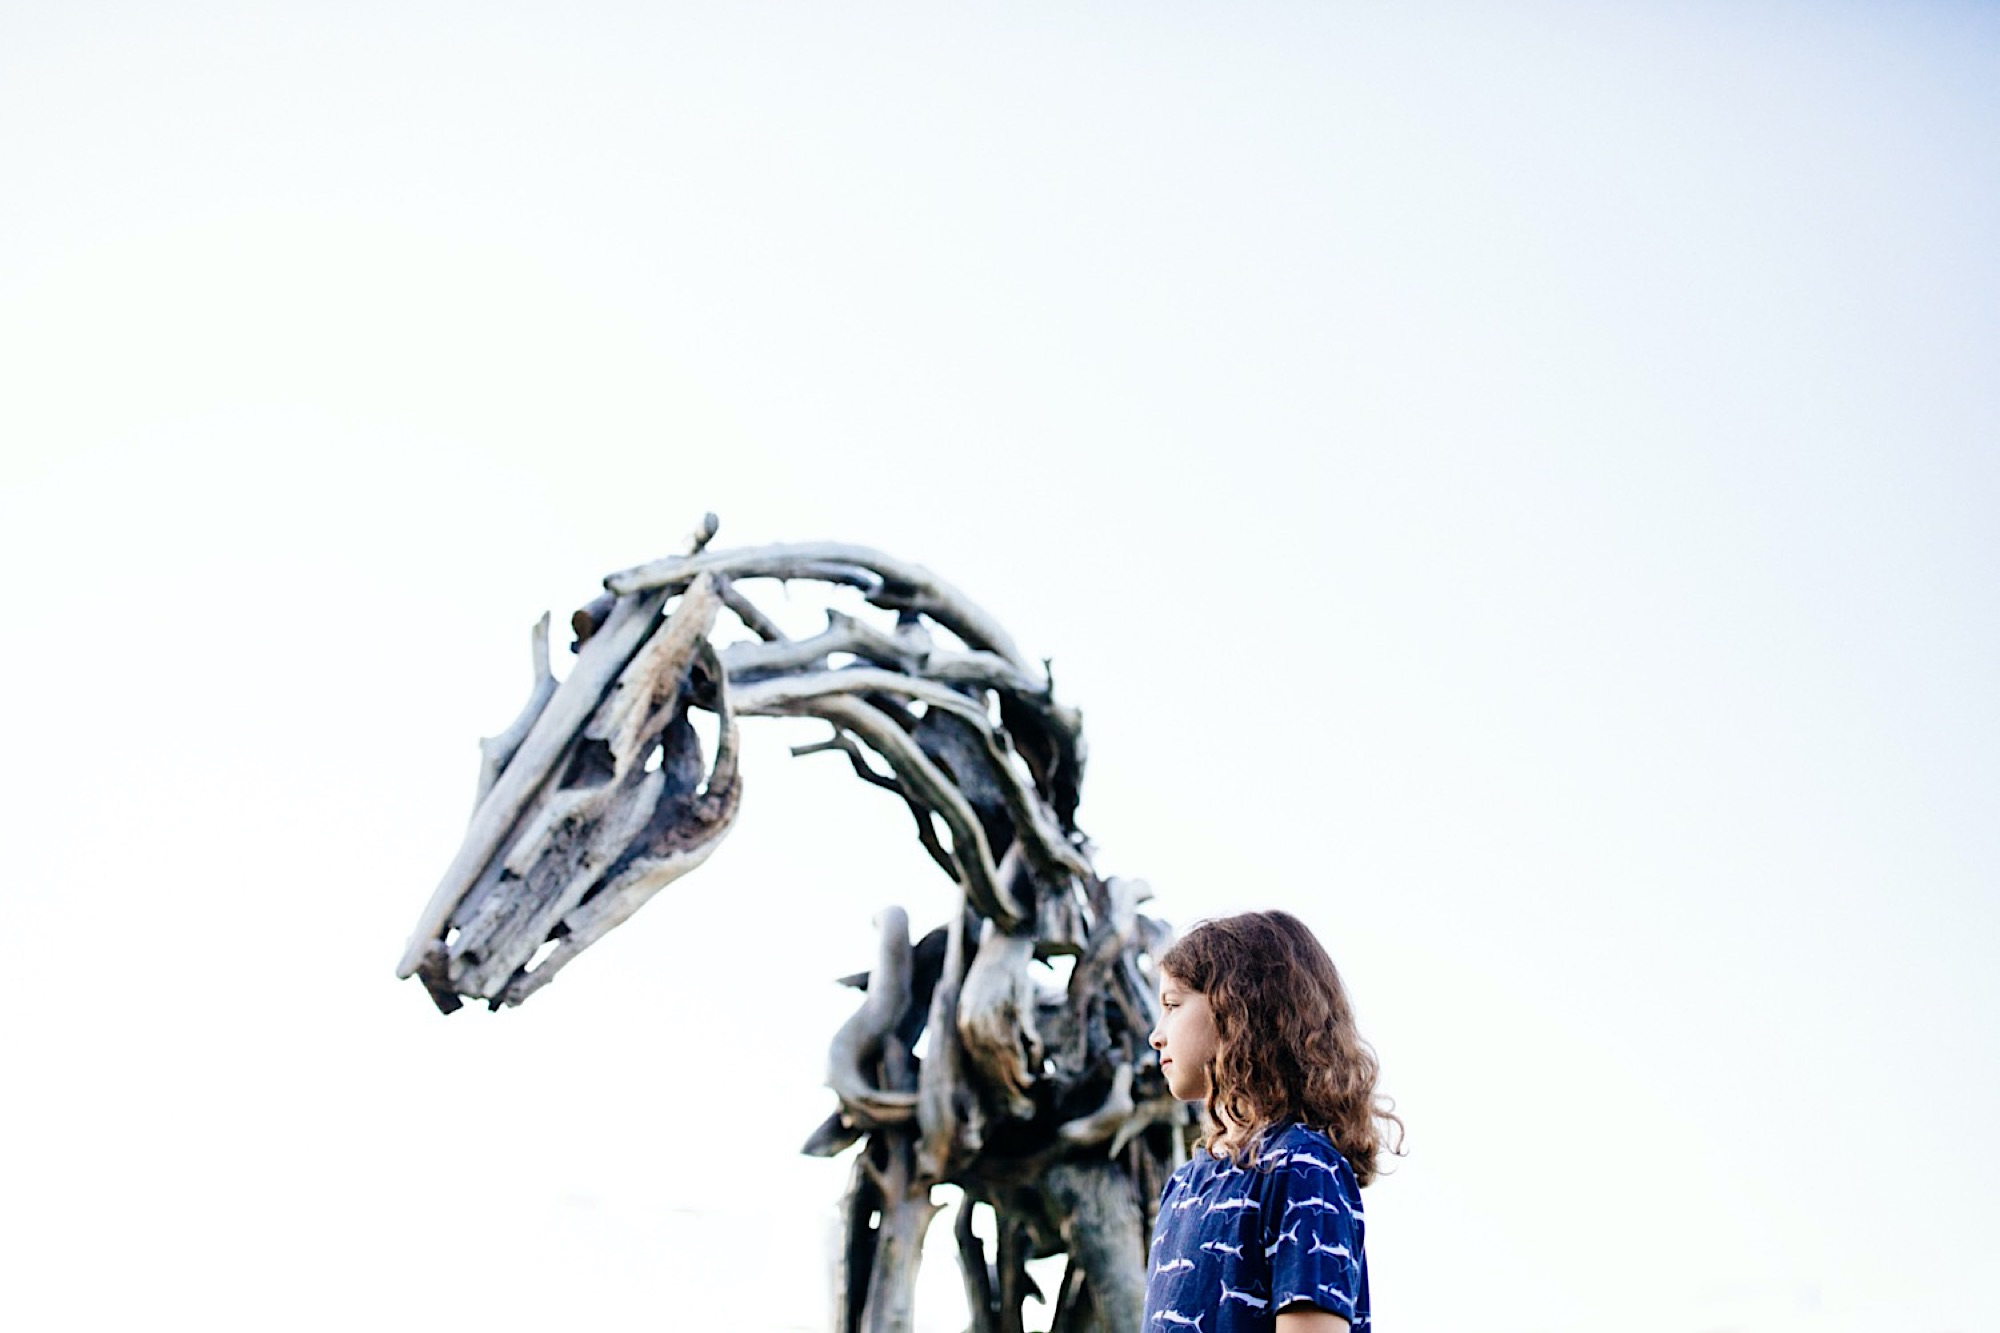 pappajohn sculpture park Des Moines family photographer Deborah butterfield horse